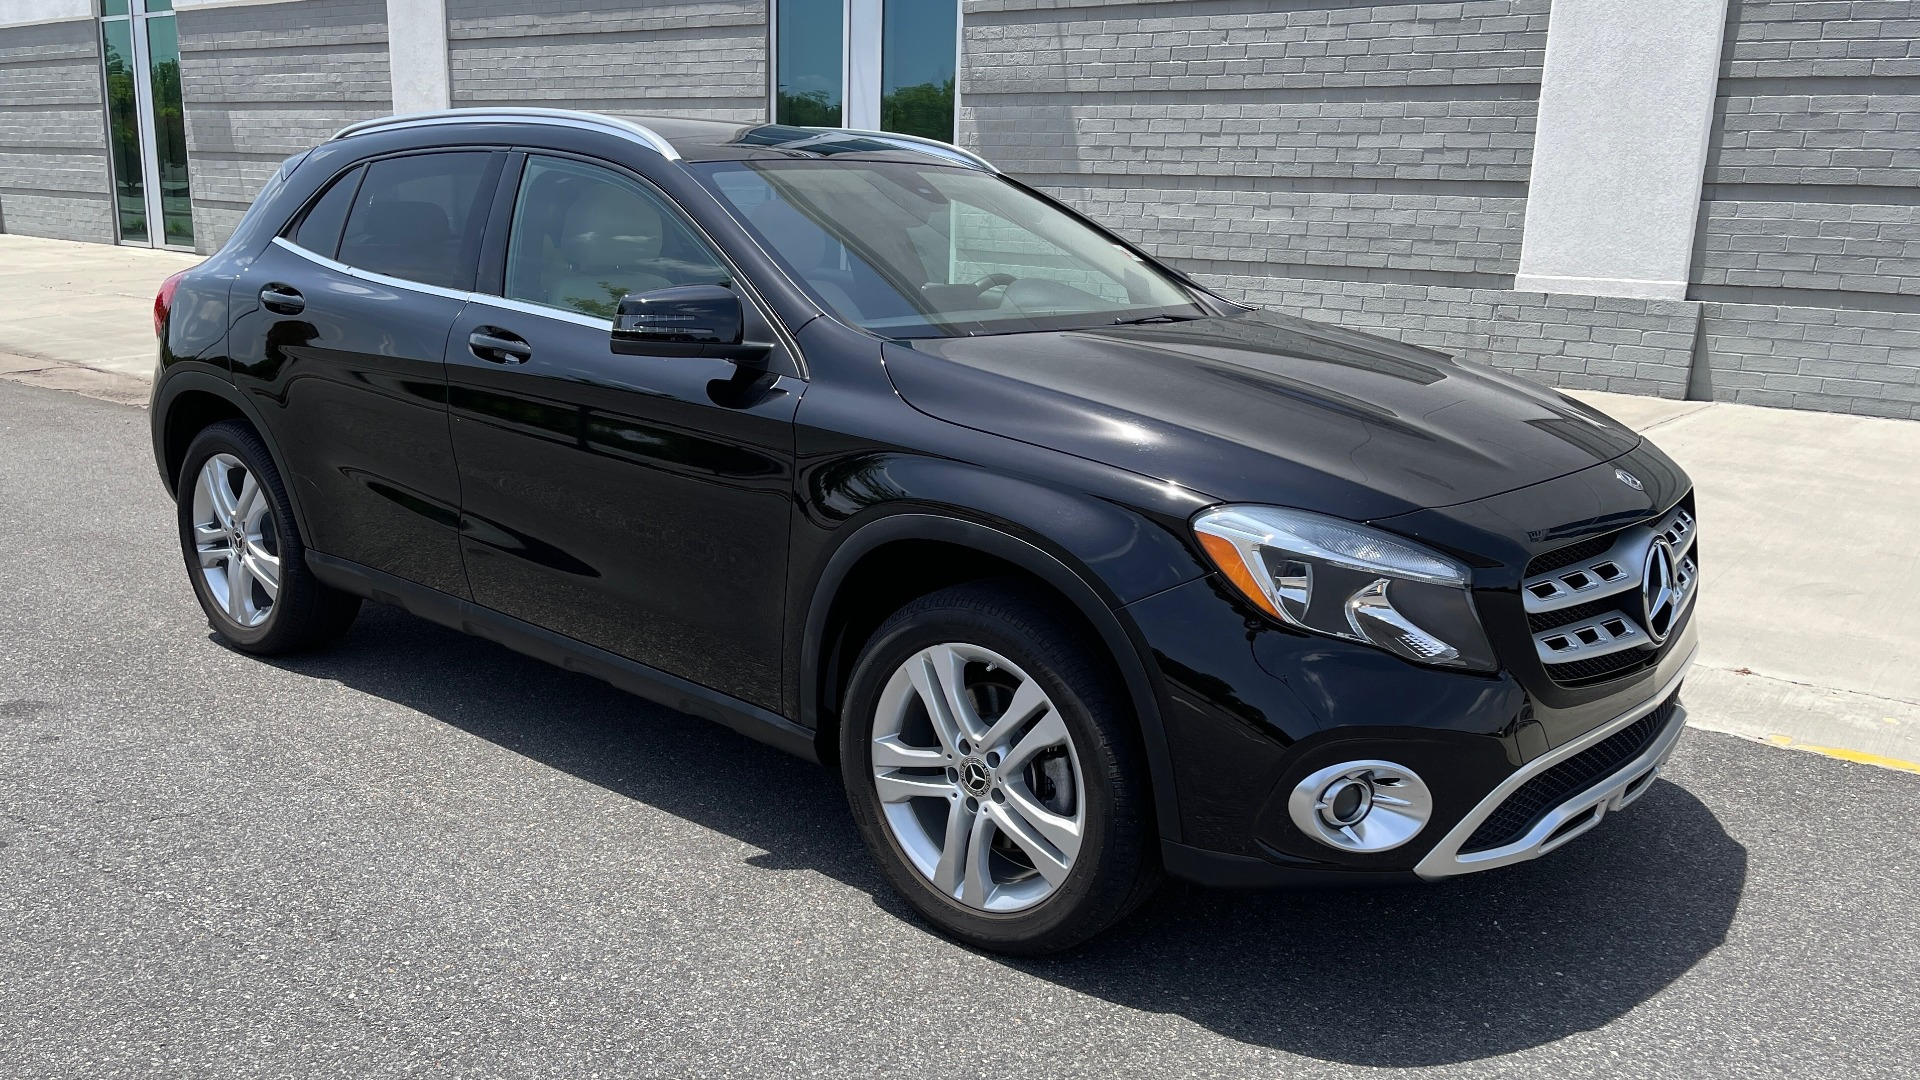 Used 2018 Mercedes-Benz GLA 250 4MATIC SUV / PANO-ROOF / HTD STS / BLIND SPOT ASST / APPLE for sale $31,995 at Formula Imports in Charlotte NC 28227 4